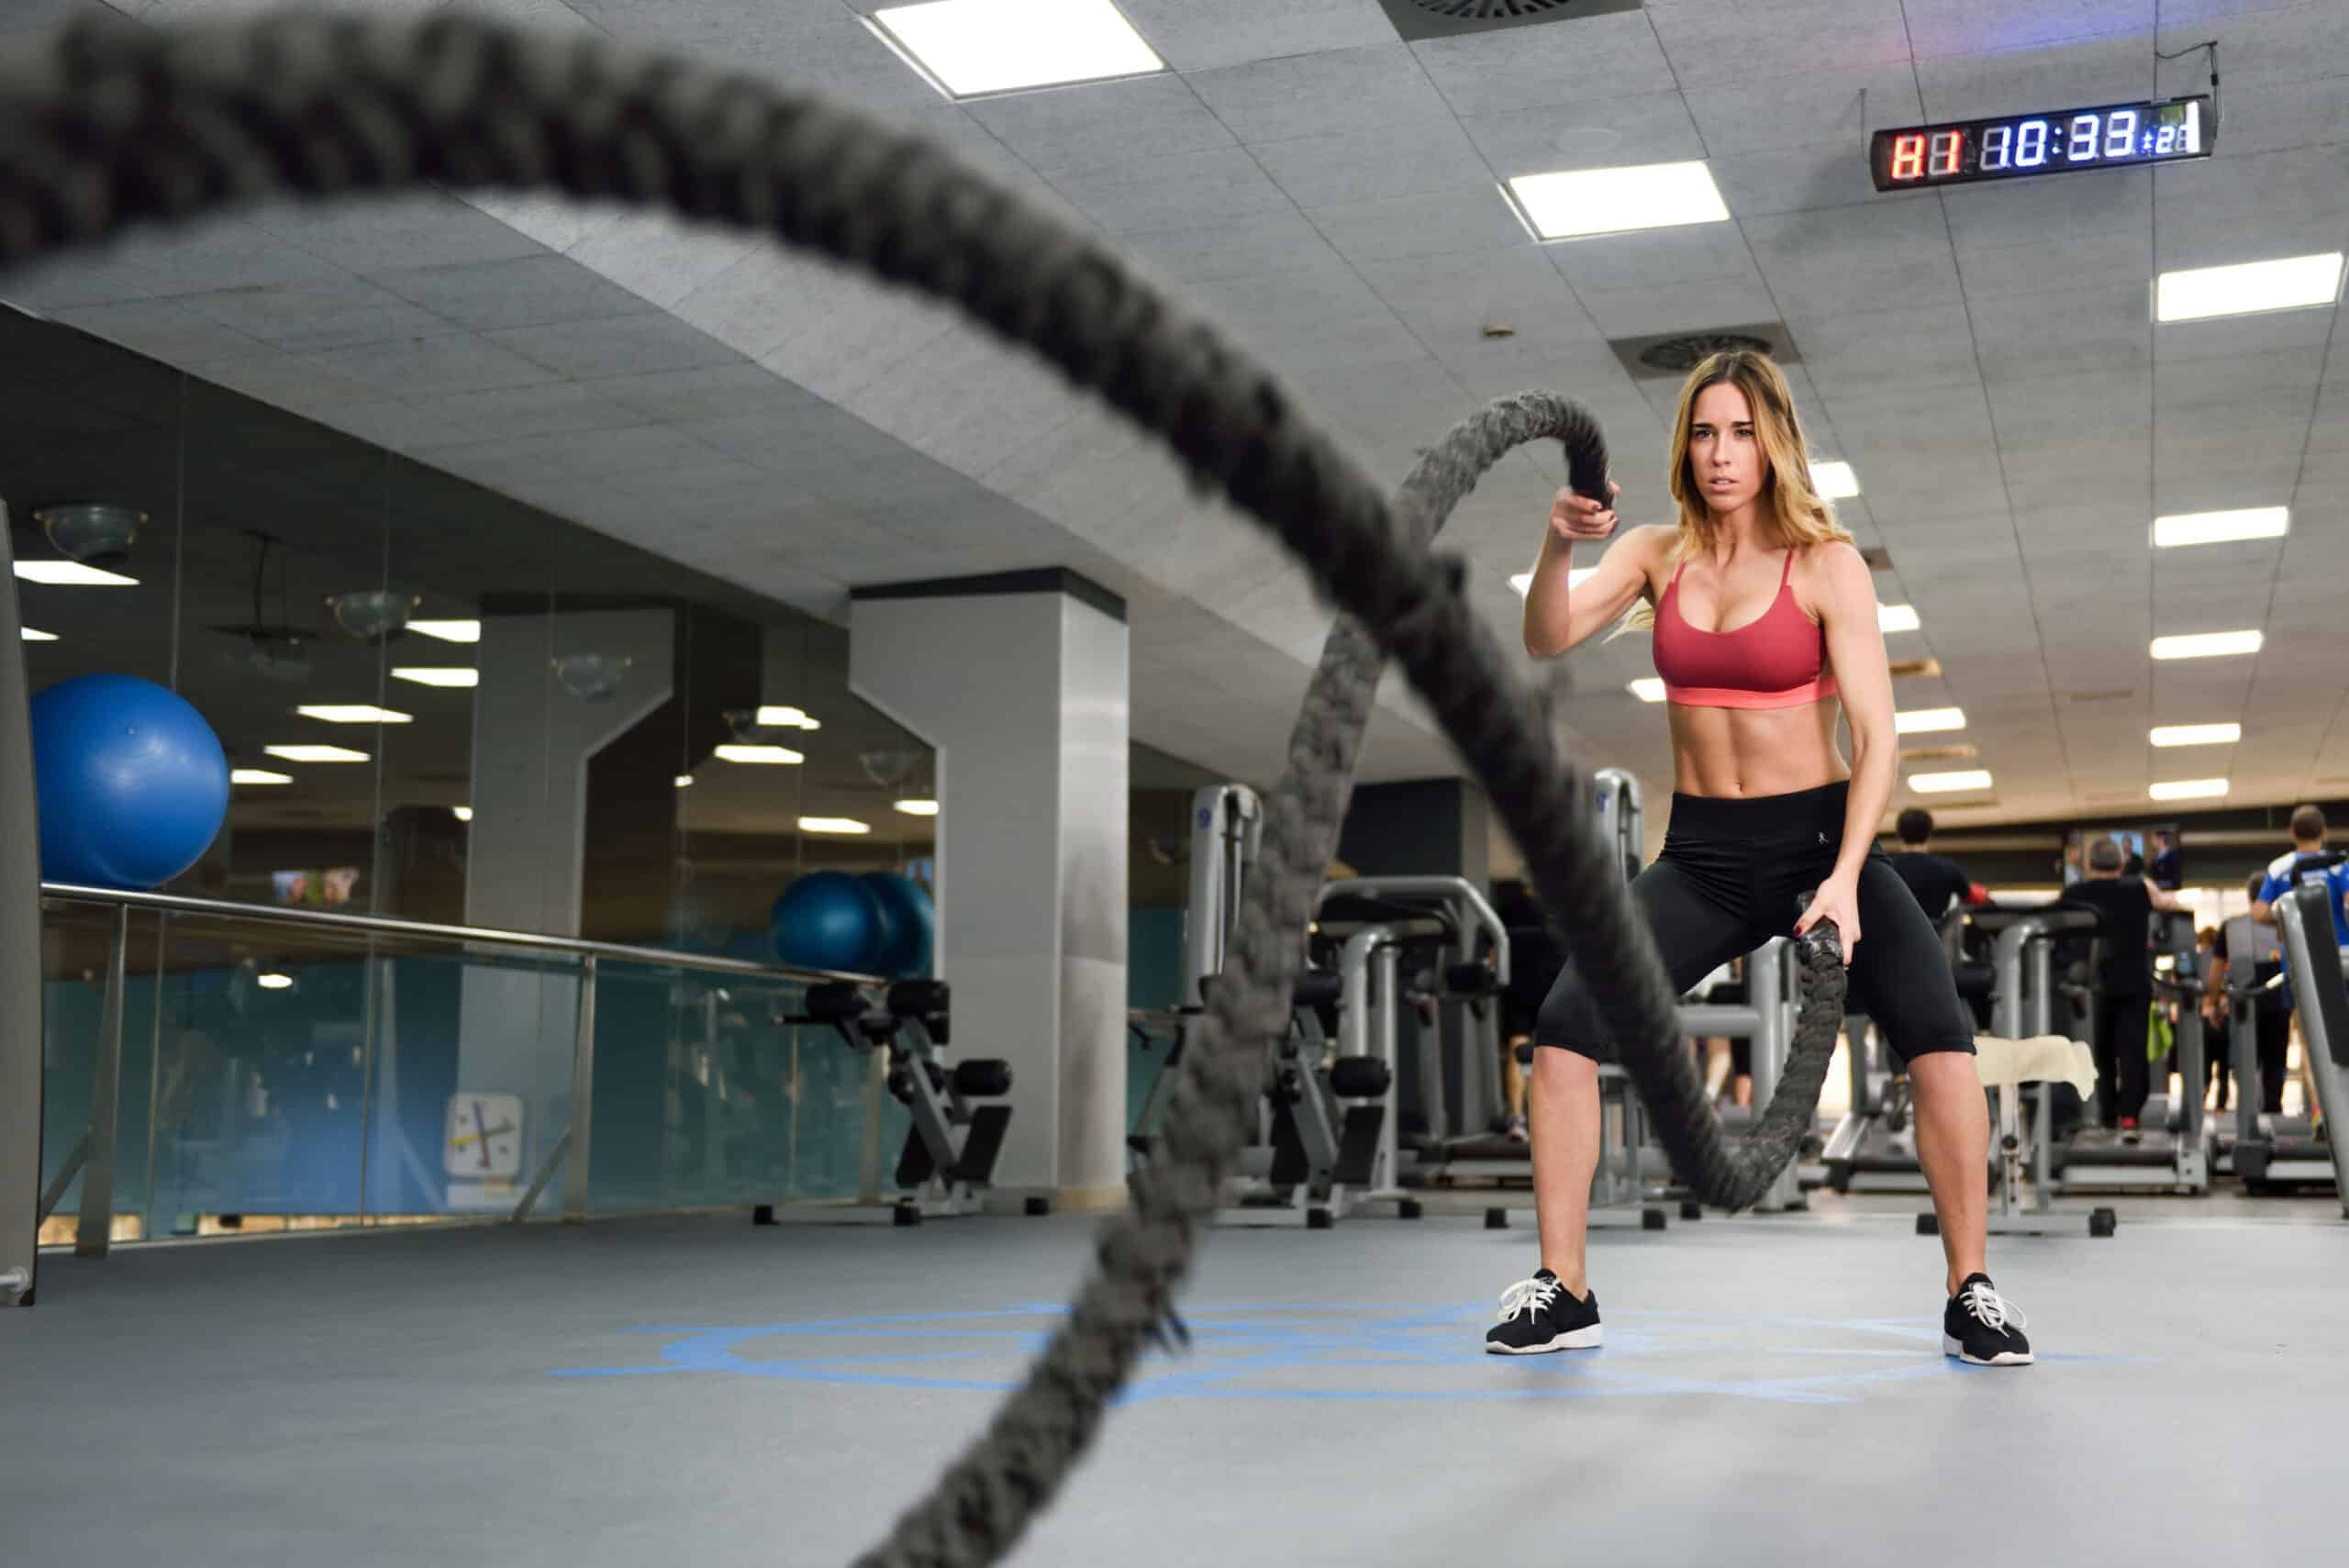 battle rope exercises all you need to know